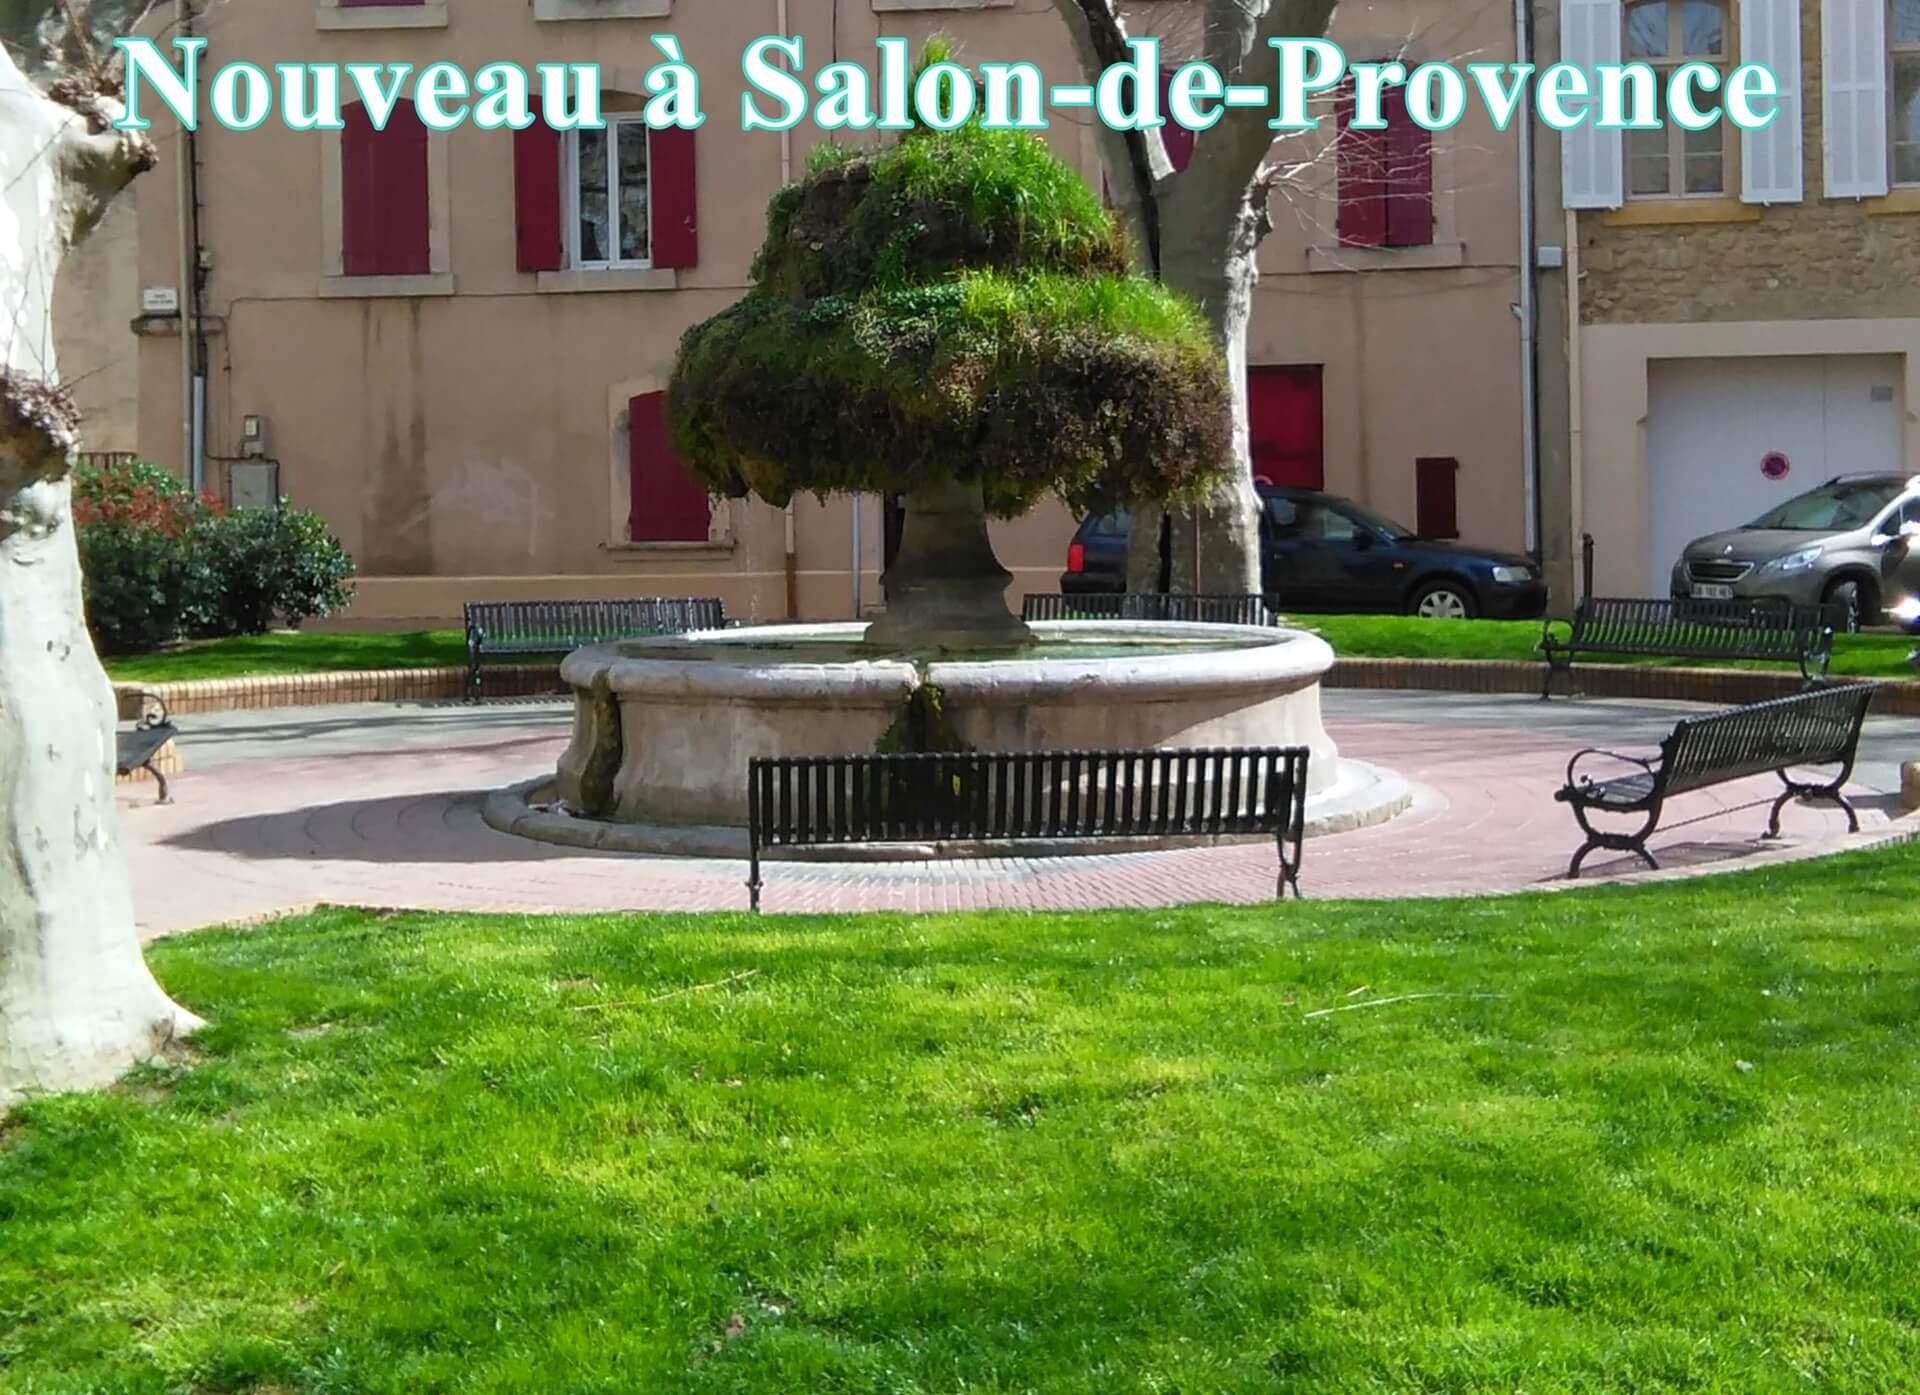 Nouveau salon de provence for Piscine salon de provence